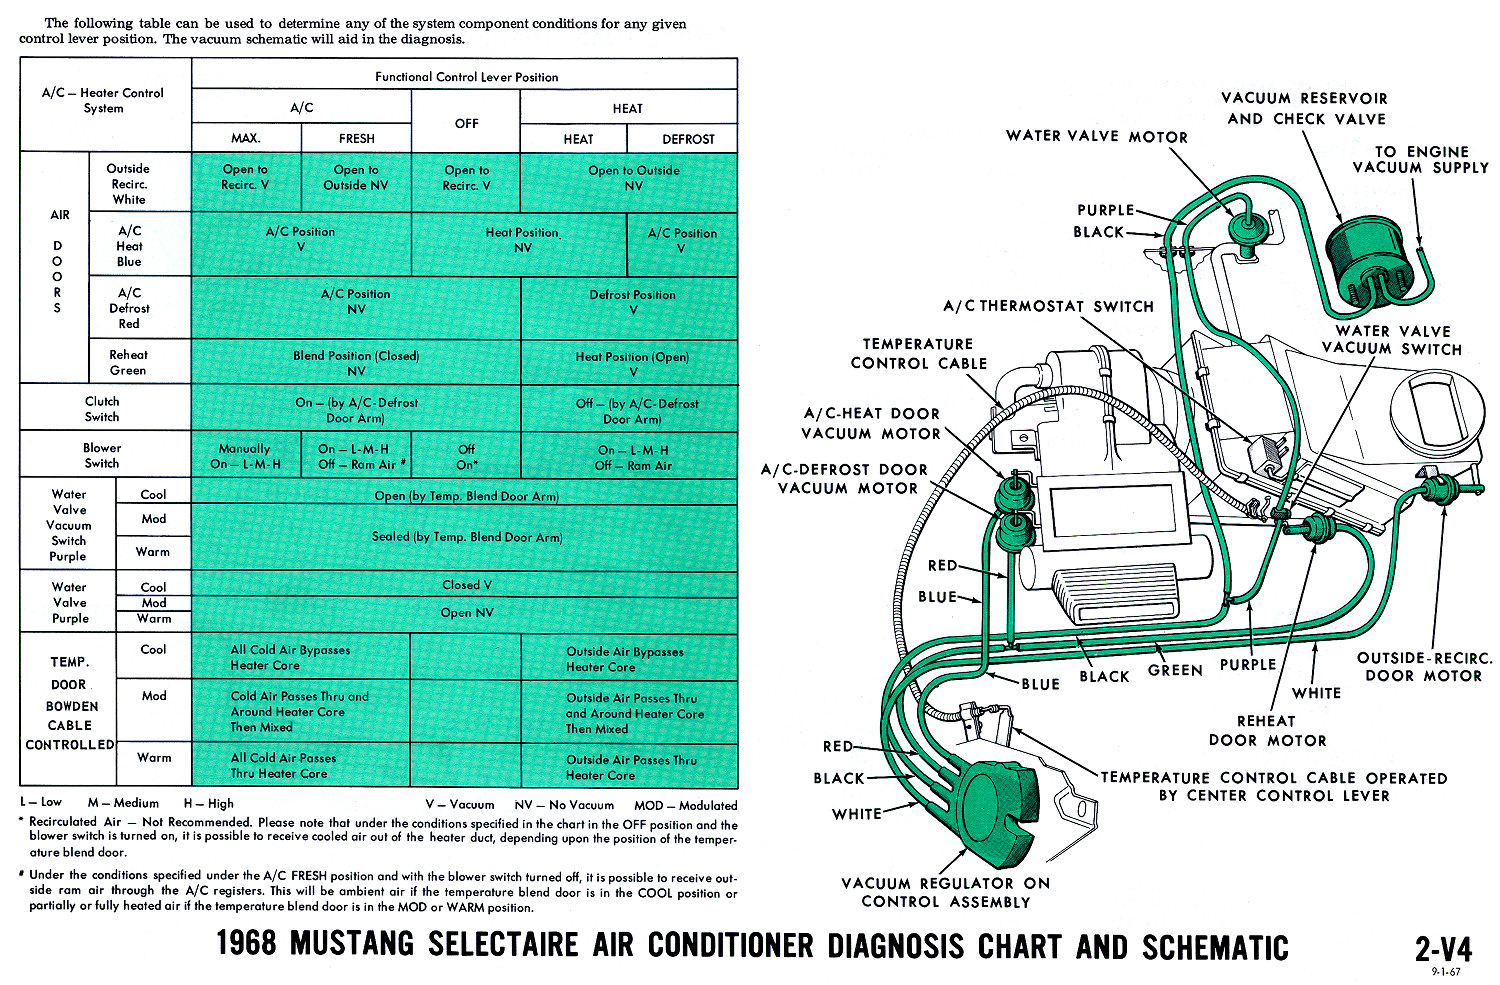 air conditioner diagnostic chart and schematic [ 1500 x 985 Pixel ]